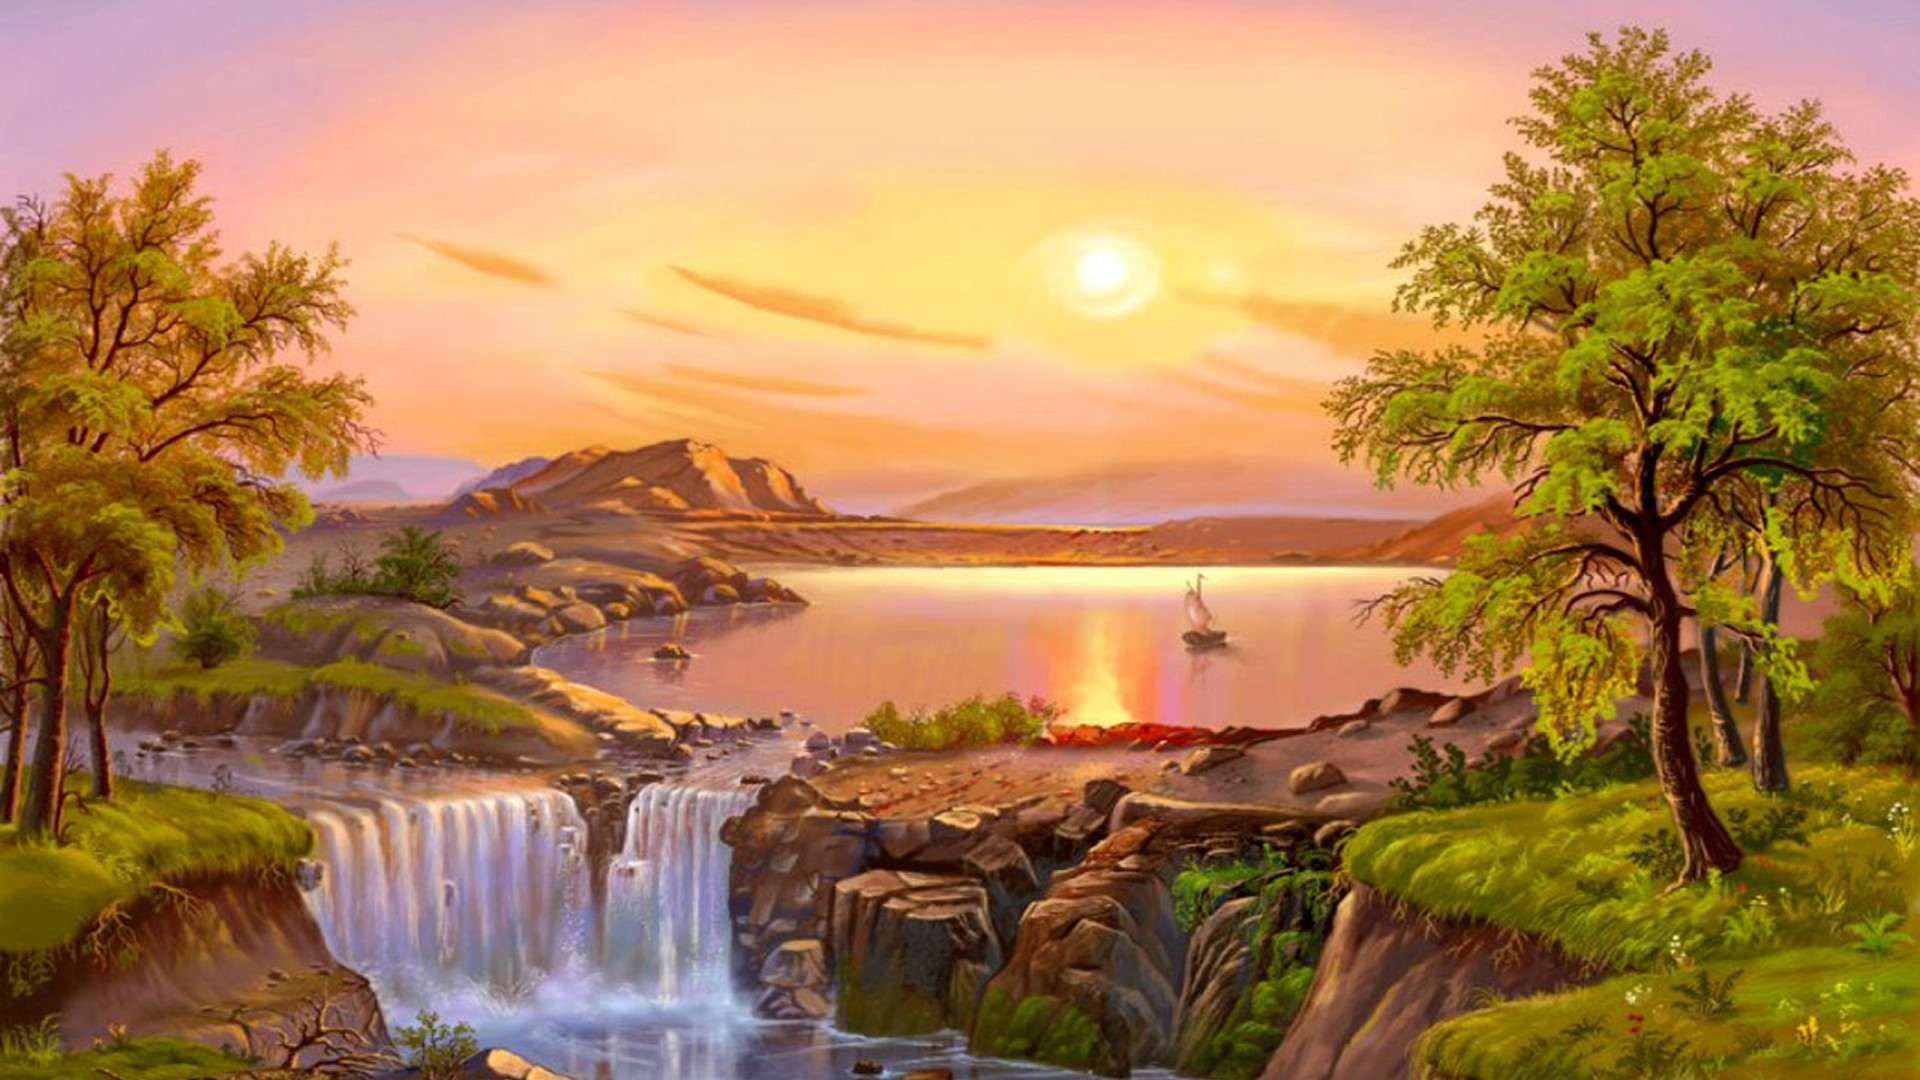 Best ideas about Beautiful Landscape Pictures . Save or Pin Beautiful Landscape River Trees Waterfall Sun Now.